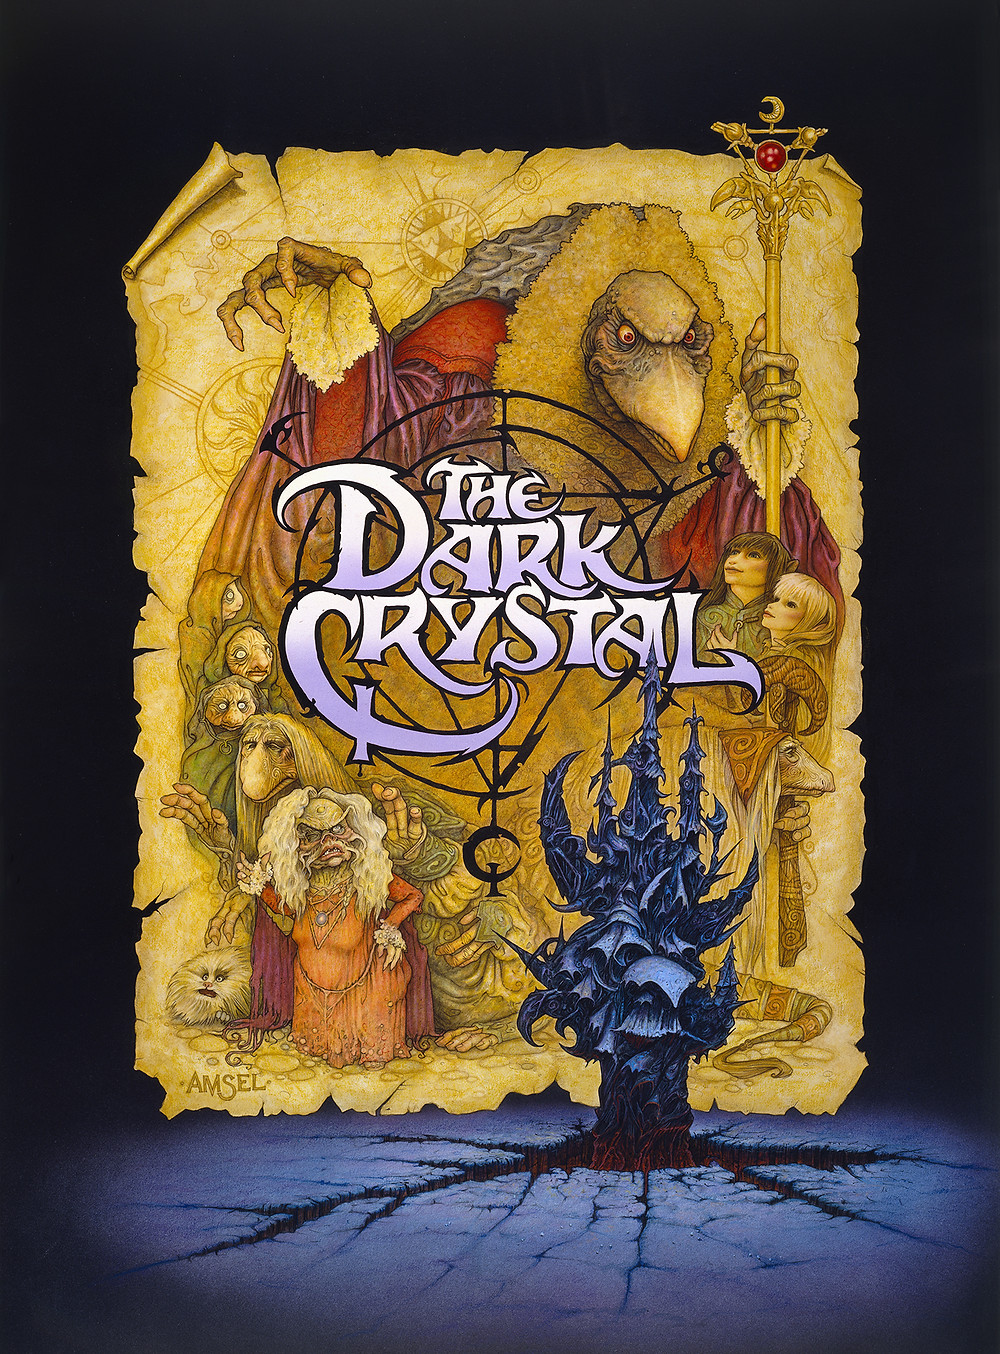 Amsel's poster for THE DARK CRYSTAL.